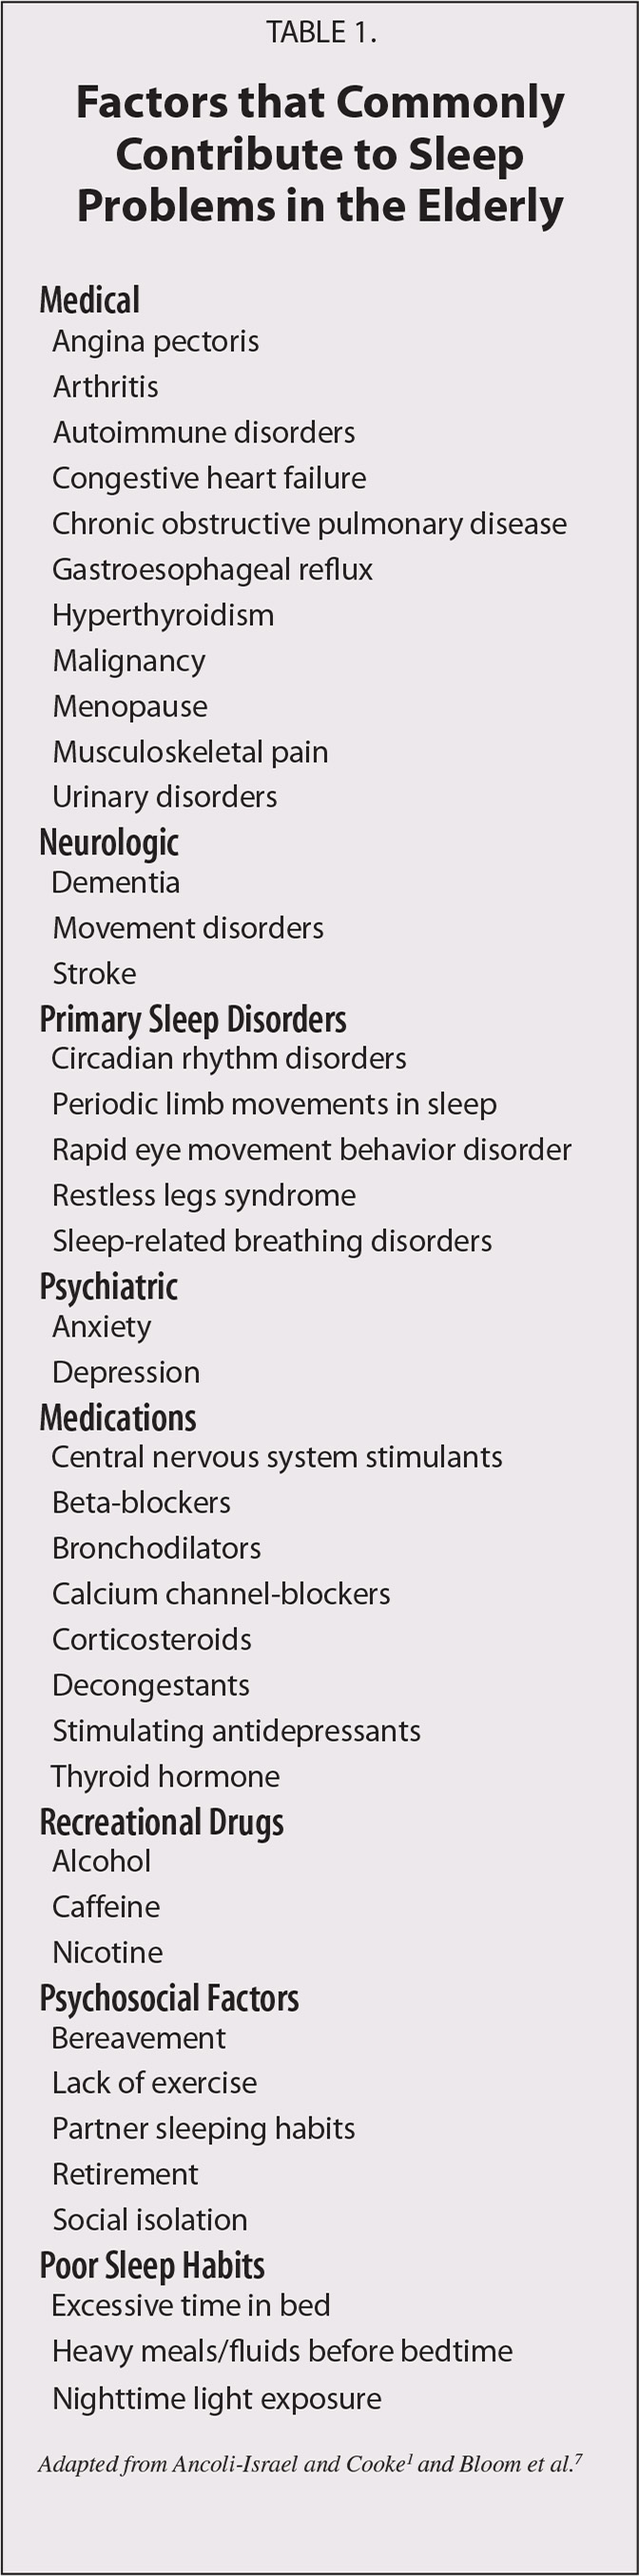 Factors that Commonly Contribute to Sleep Problems in the Elderly